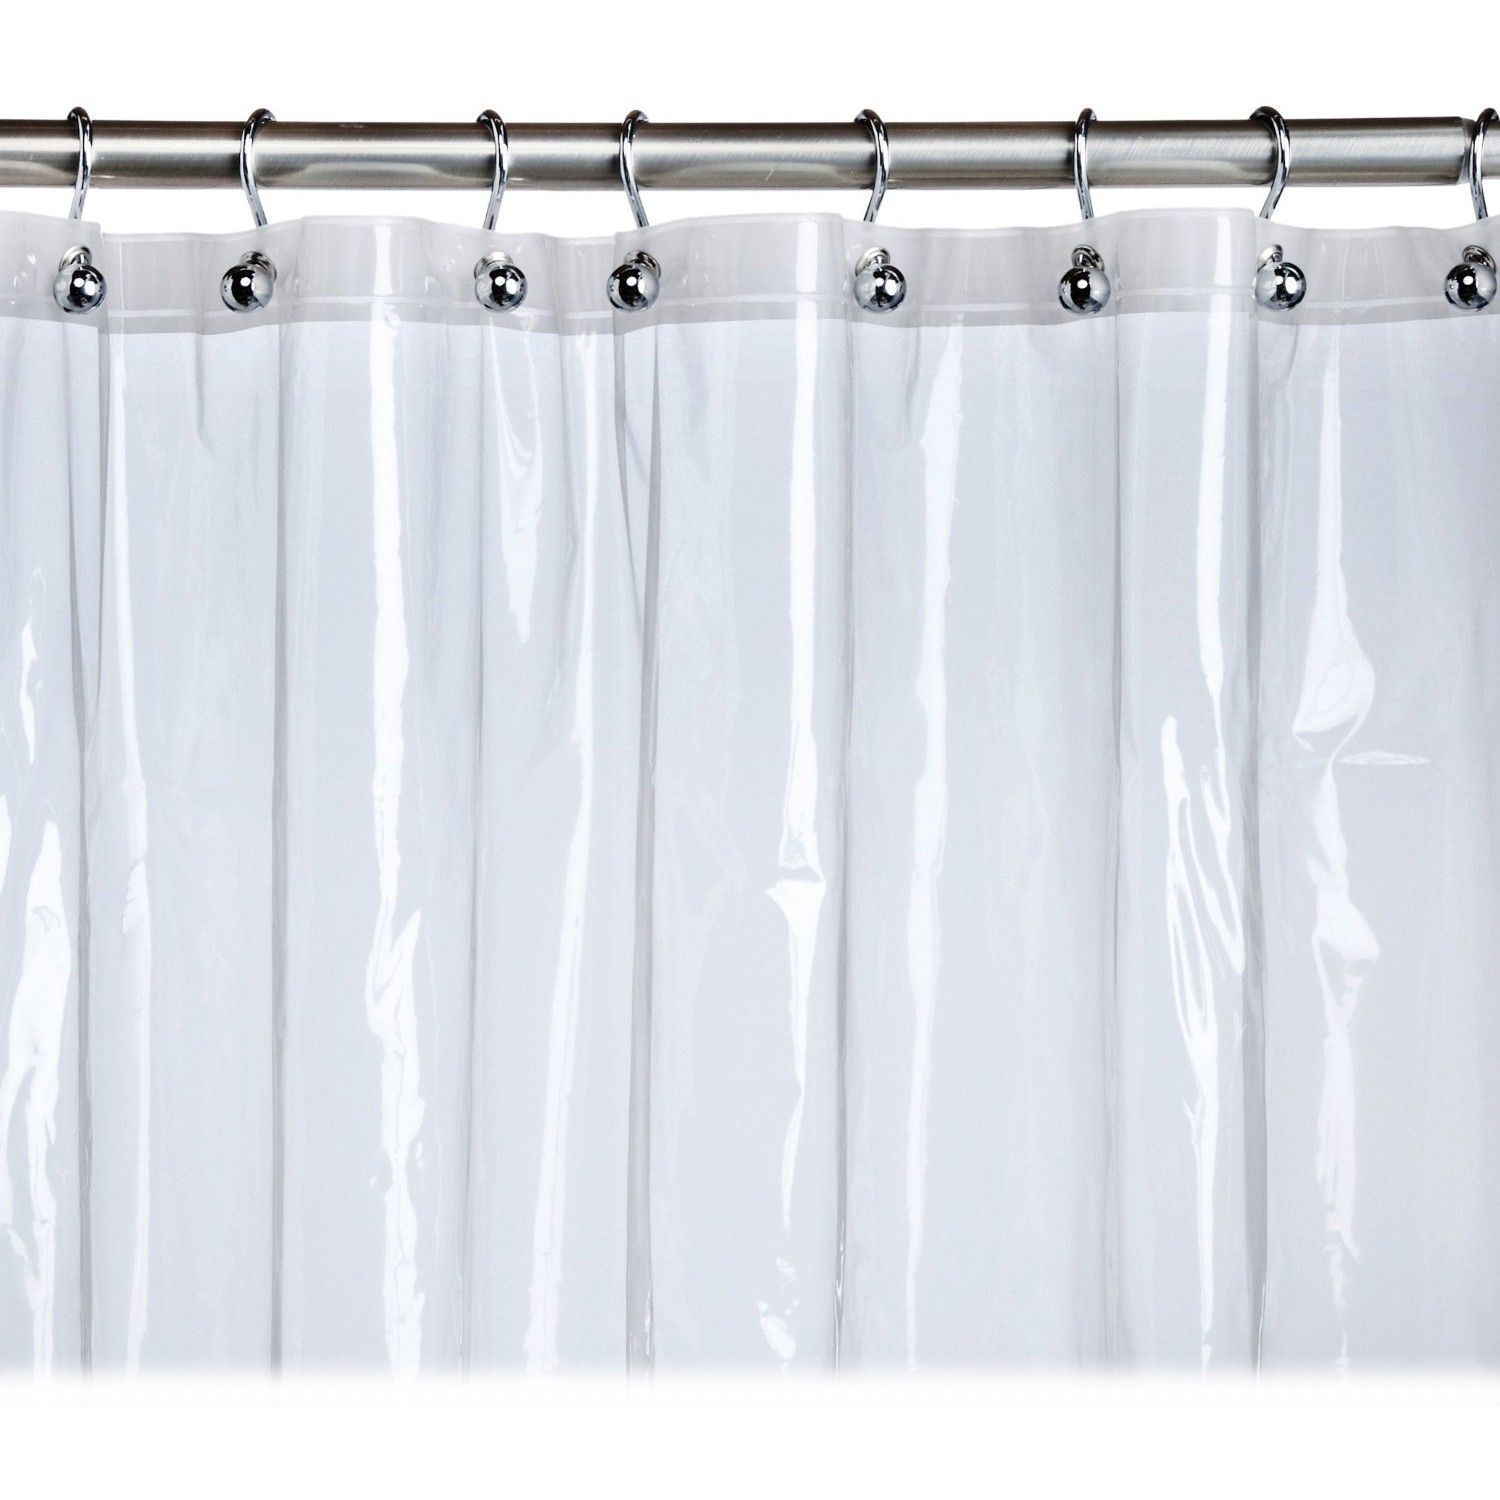 At Home With Meijer Clear Stall Shower Curtain Liner Vinyl Shower Curtains Fabric Shower Curtains Stall Shower Curtain